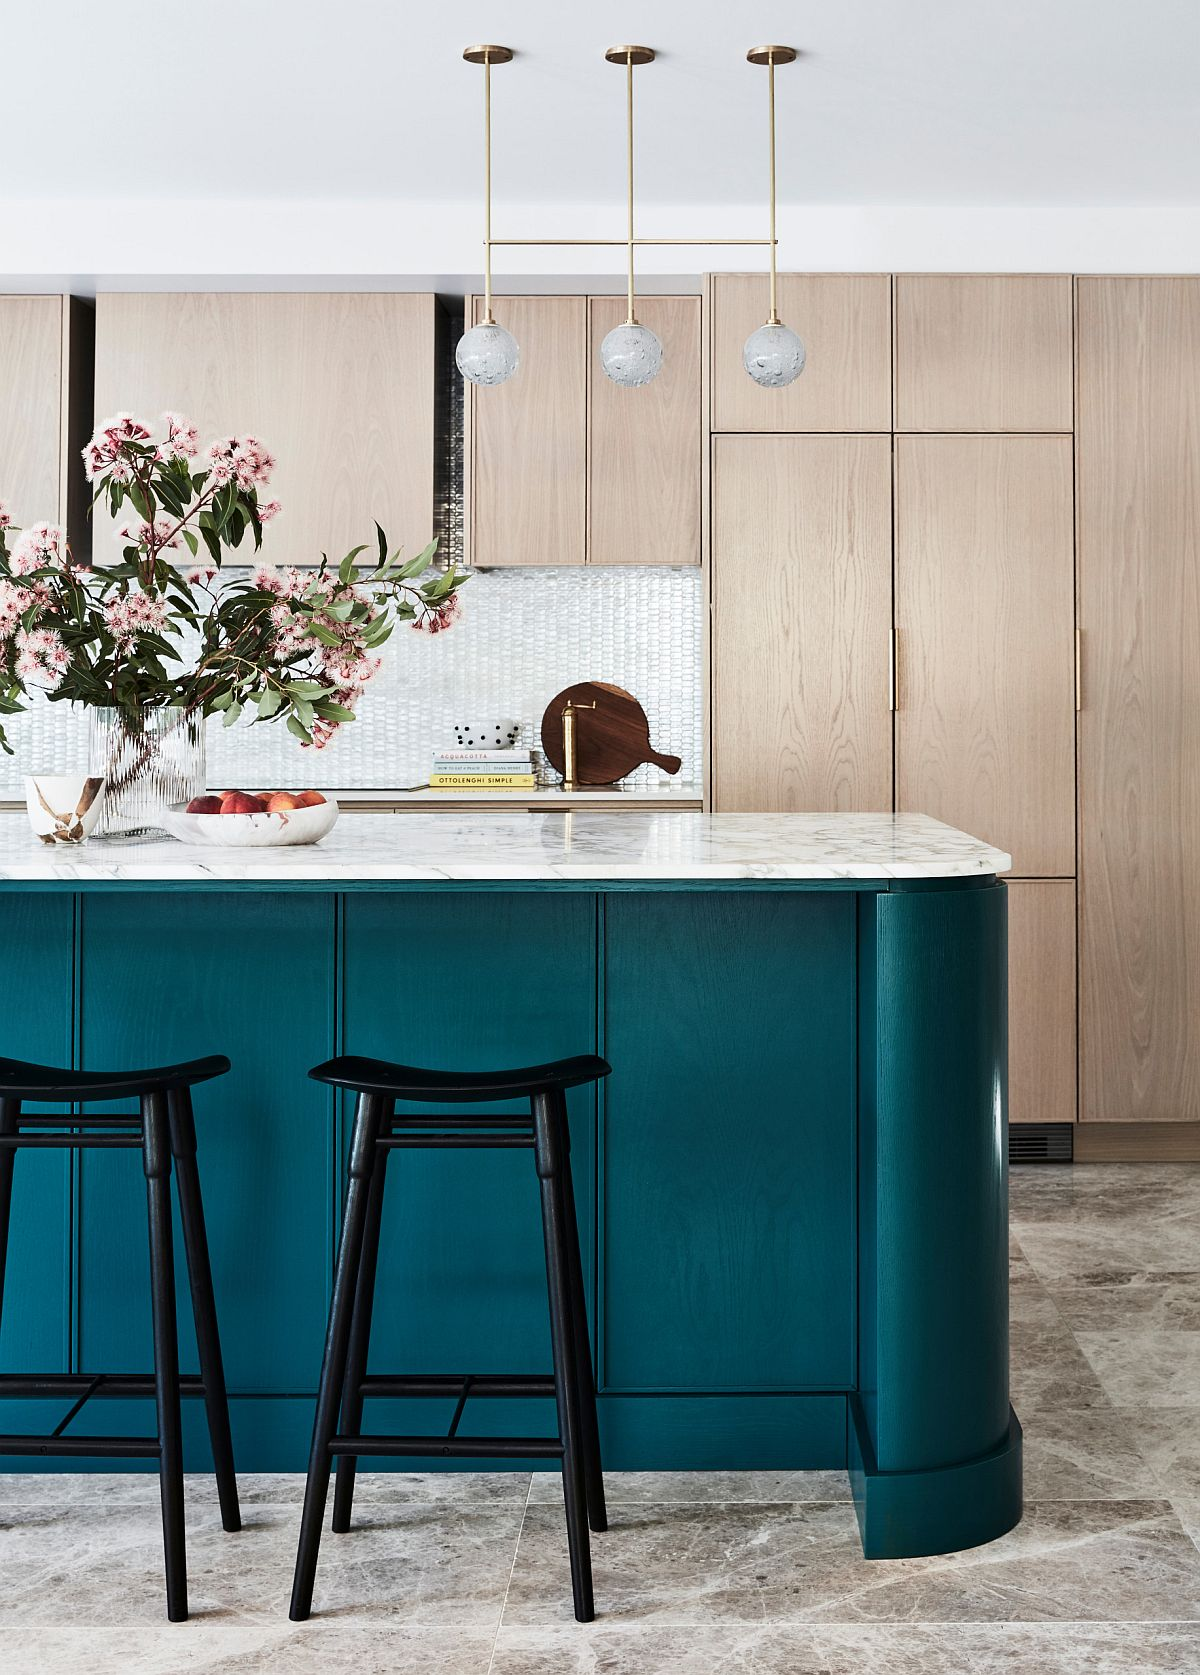 Touch-of-teal-for-the-kitchen-island-brings-color-to-the-neutral-space-in-white-and-gray-64186